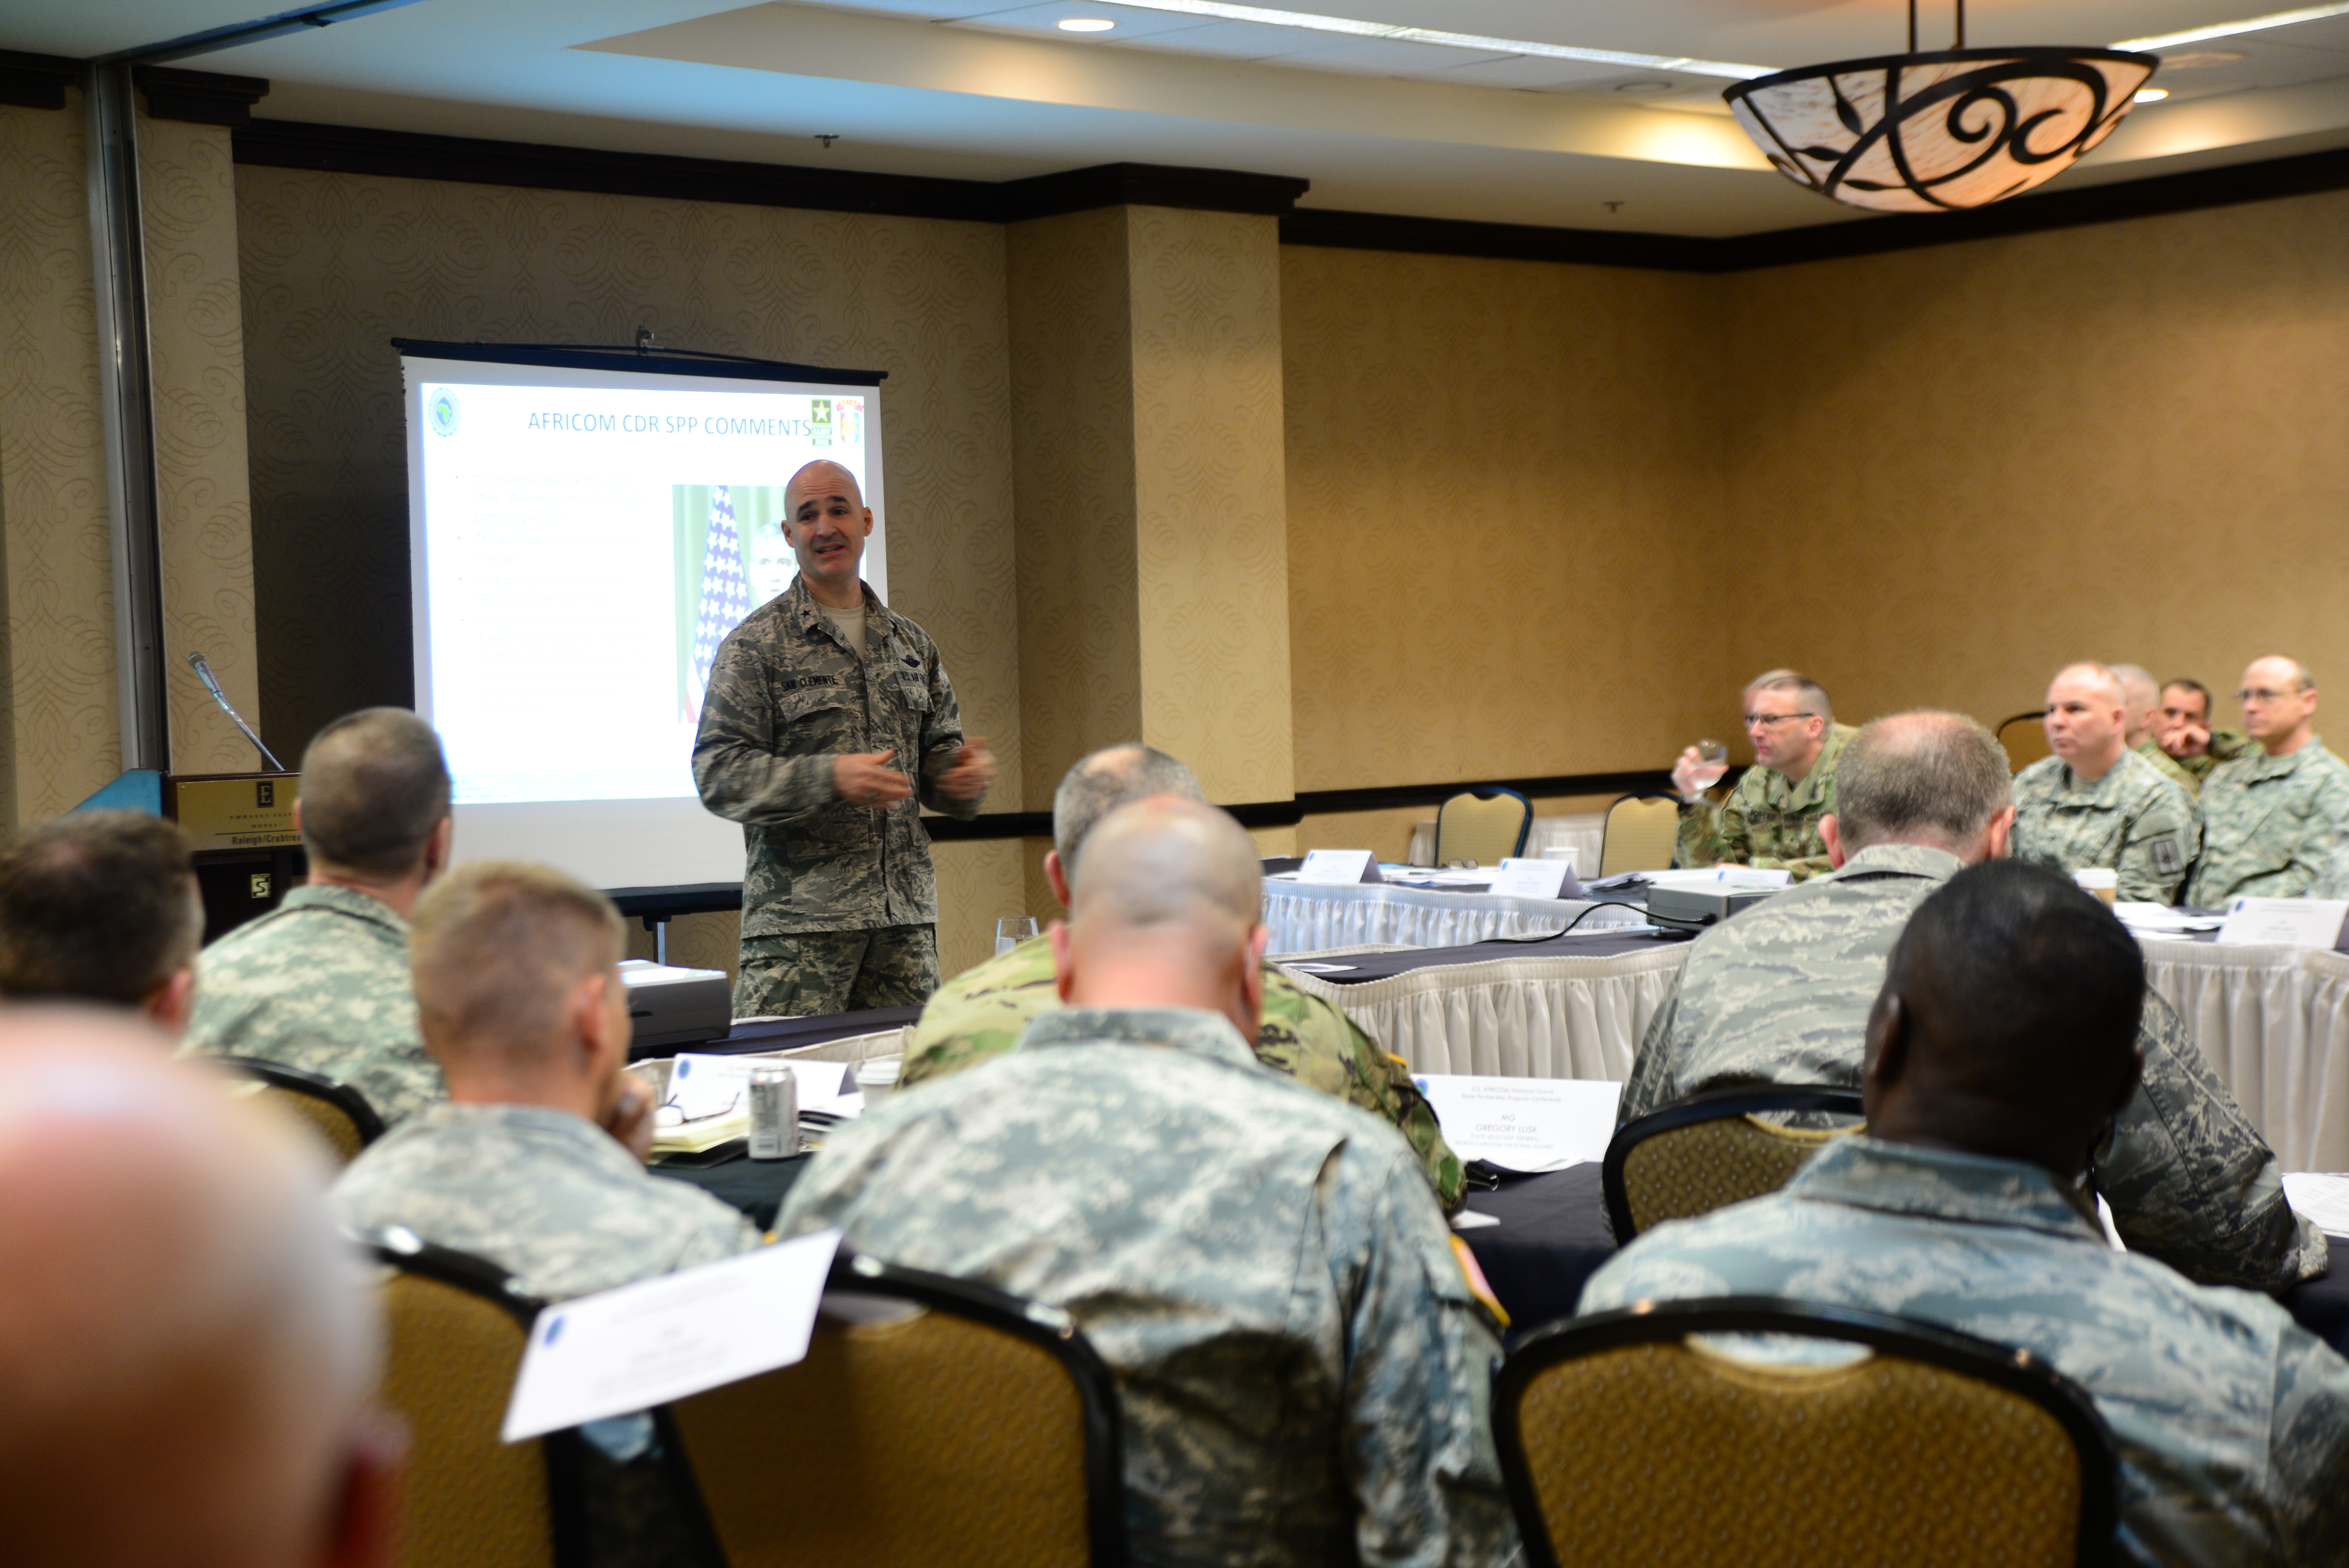 Air Force Brig. Gen. David San Clemente, deputy director for strategy, plans and program at AFRICOM, speaks to senior leaders of ten National Guard states from across the U.S., U.S. Africa Command and U.S. Army Africa, about strategic and long-term planning at the State Partnership Program conference in Raleigh, N.C., Jan. 26, 2016.  The service members met at the conference to discuss the long-term strategic plans and programs for AFRICOM. These plans include security force assistance programs, strengthening institutions and regional approaches to disaster preparedness. (U.S. Army National Guard photo by Sgt. Lisa Vines, Public Affairs Office/Released)